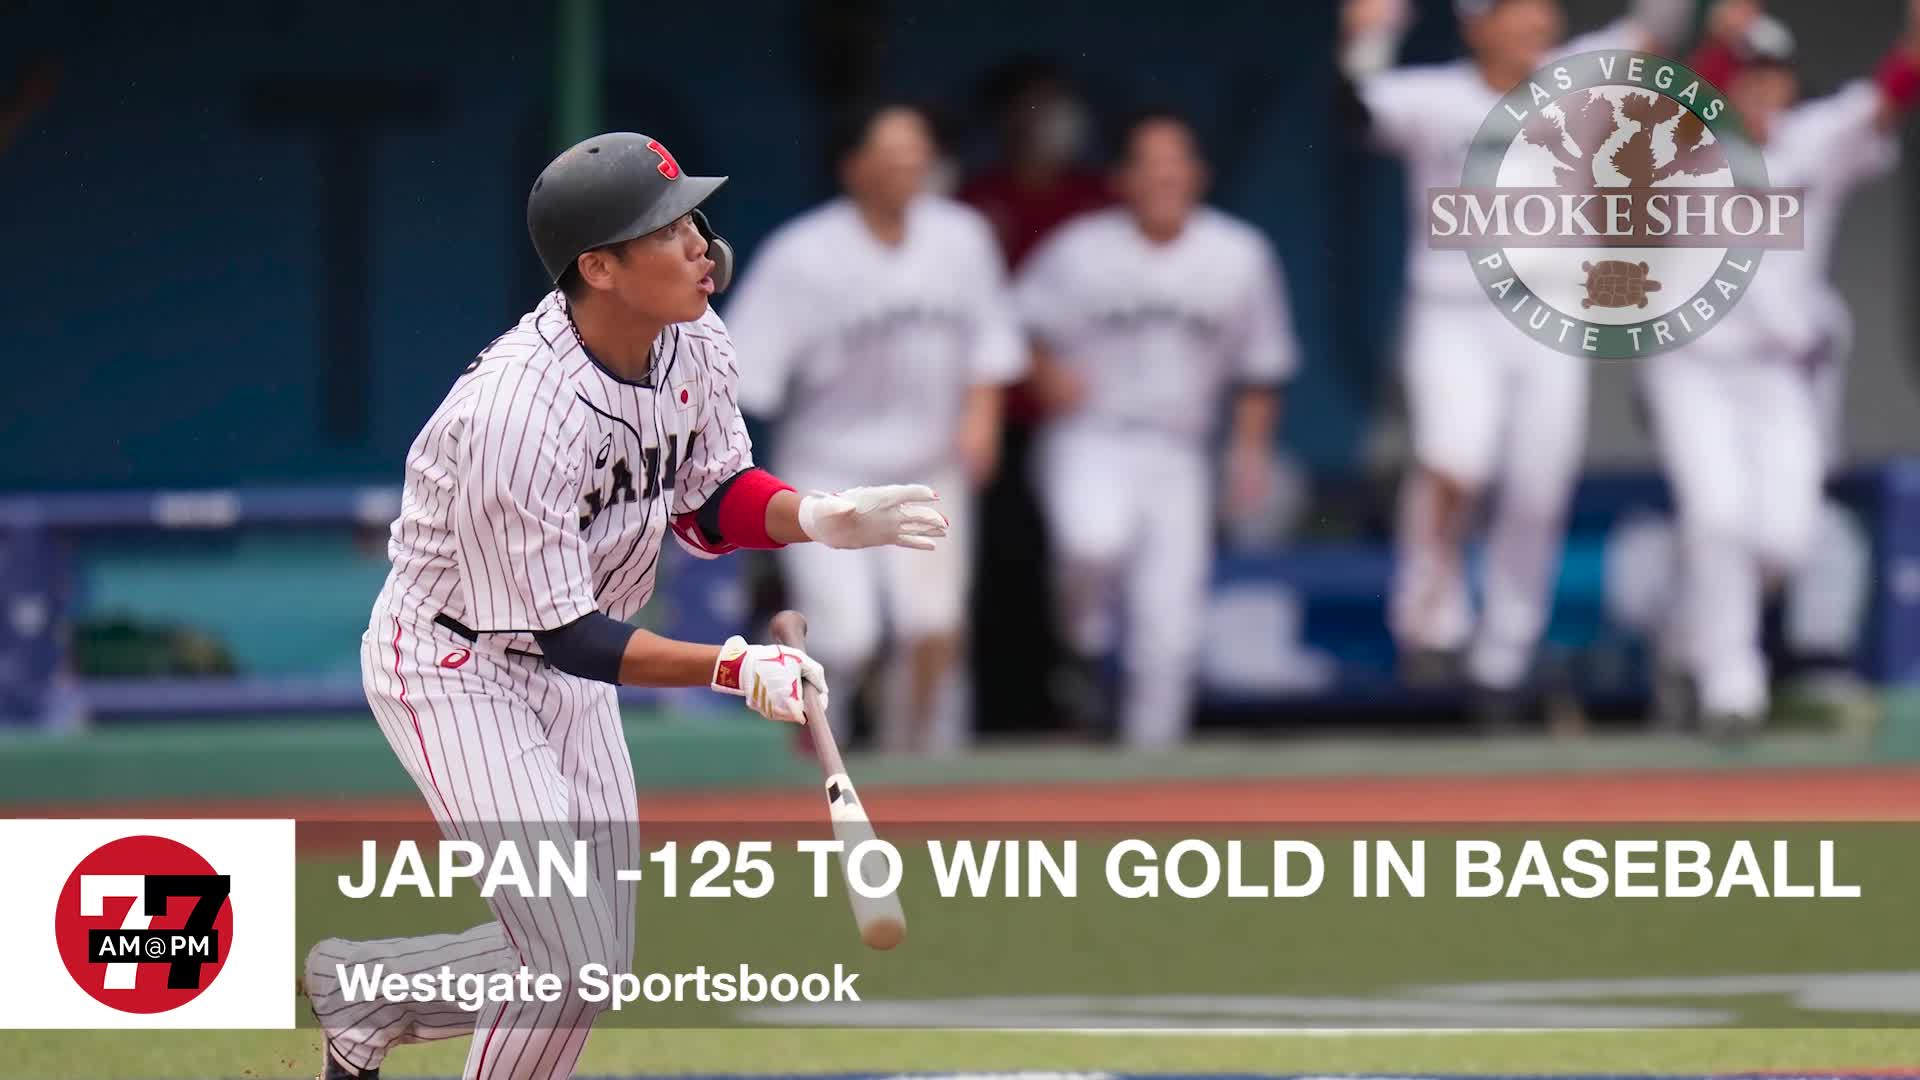 7@7PM Japan -125 to Win Gold in Baseball